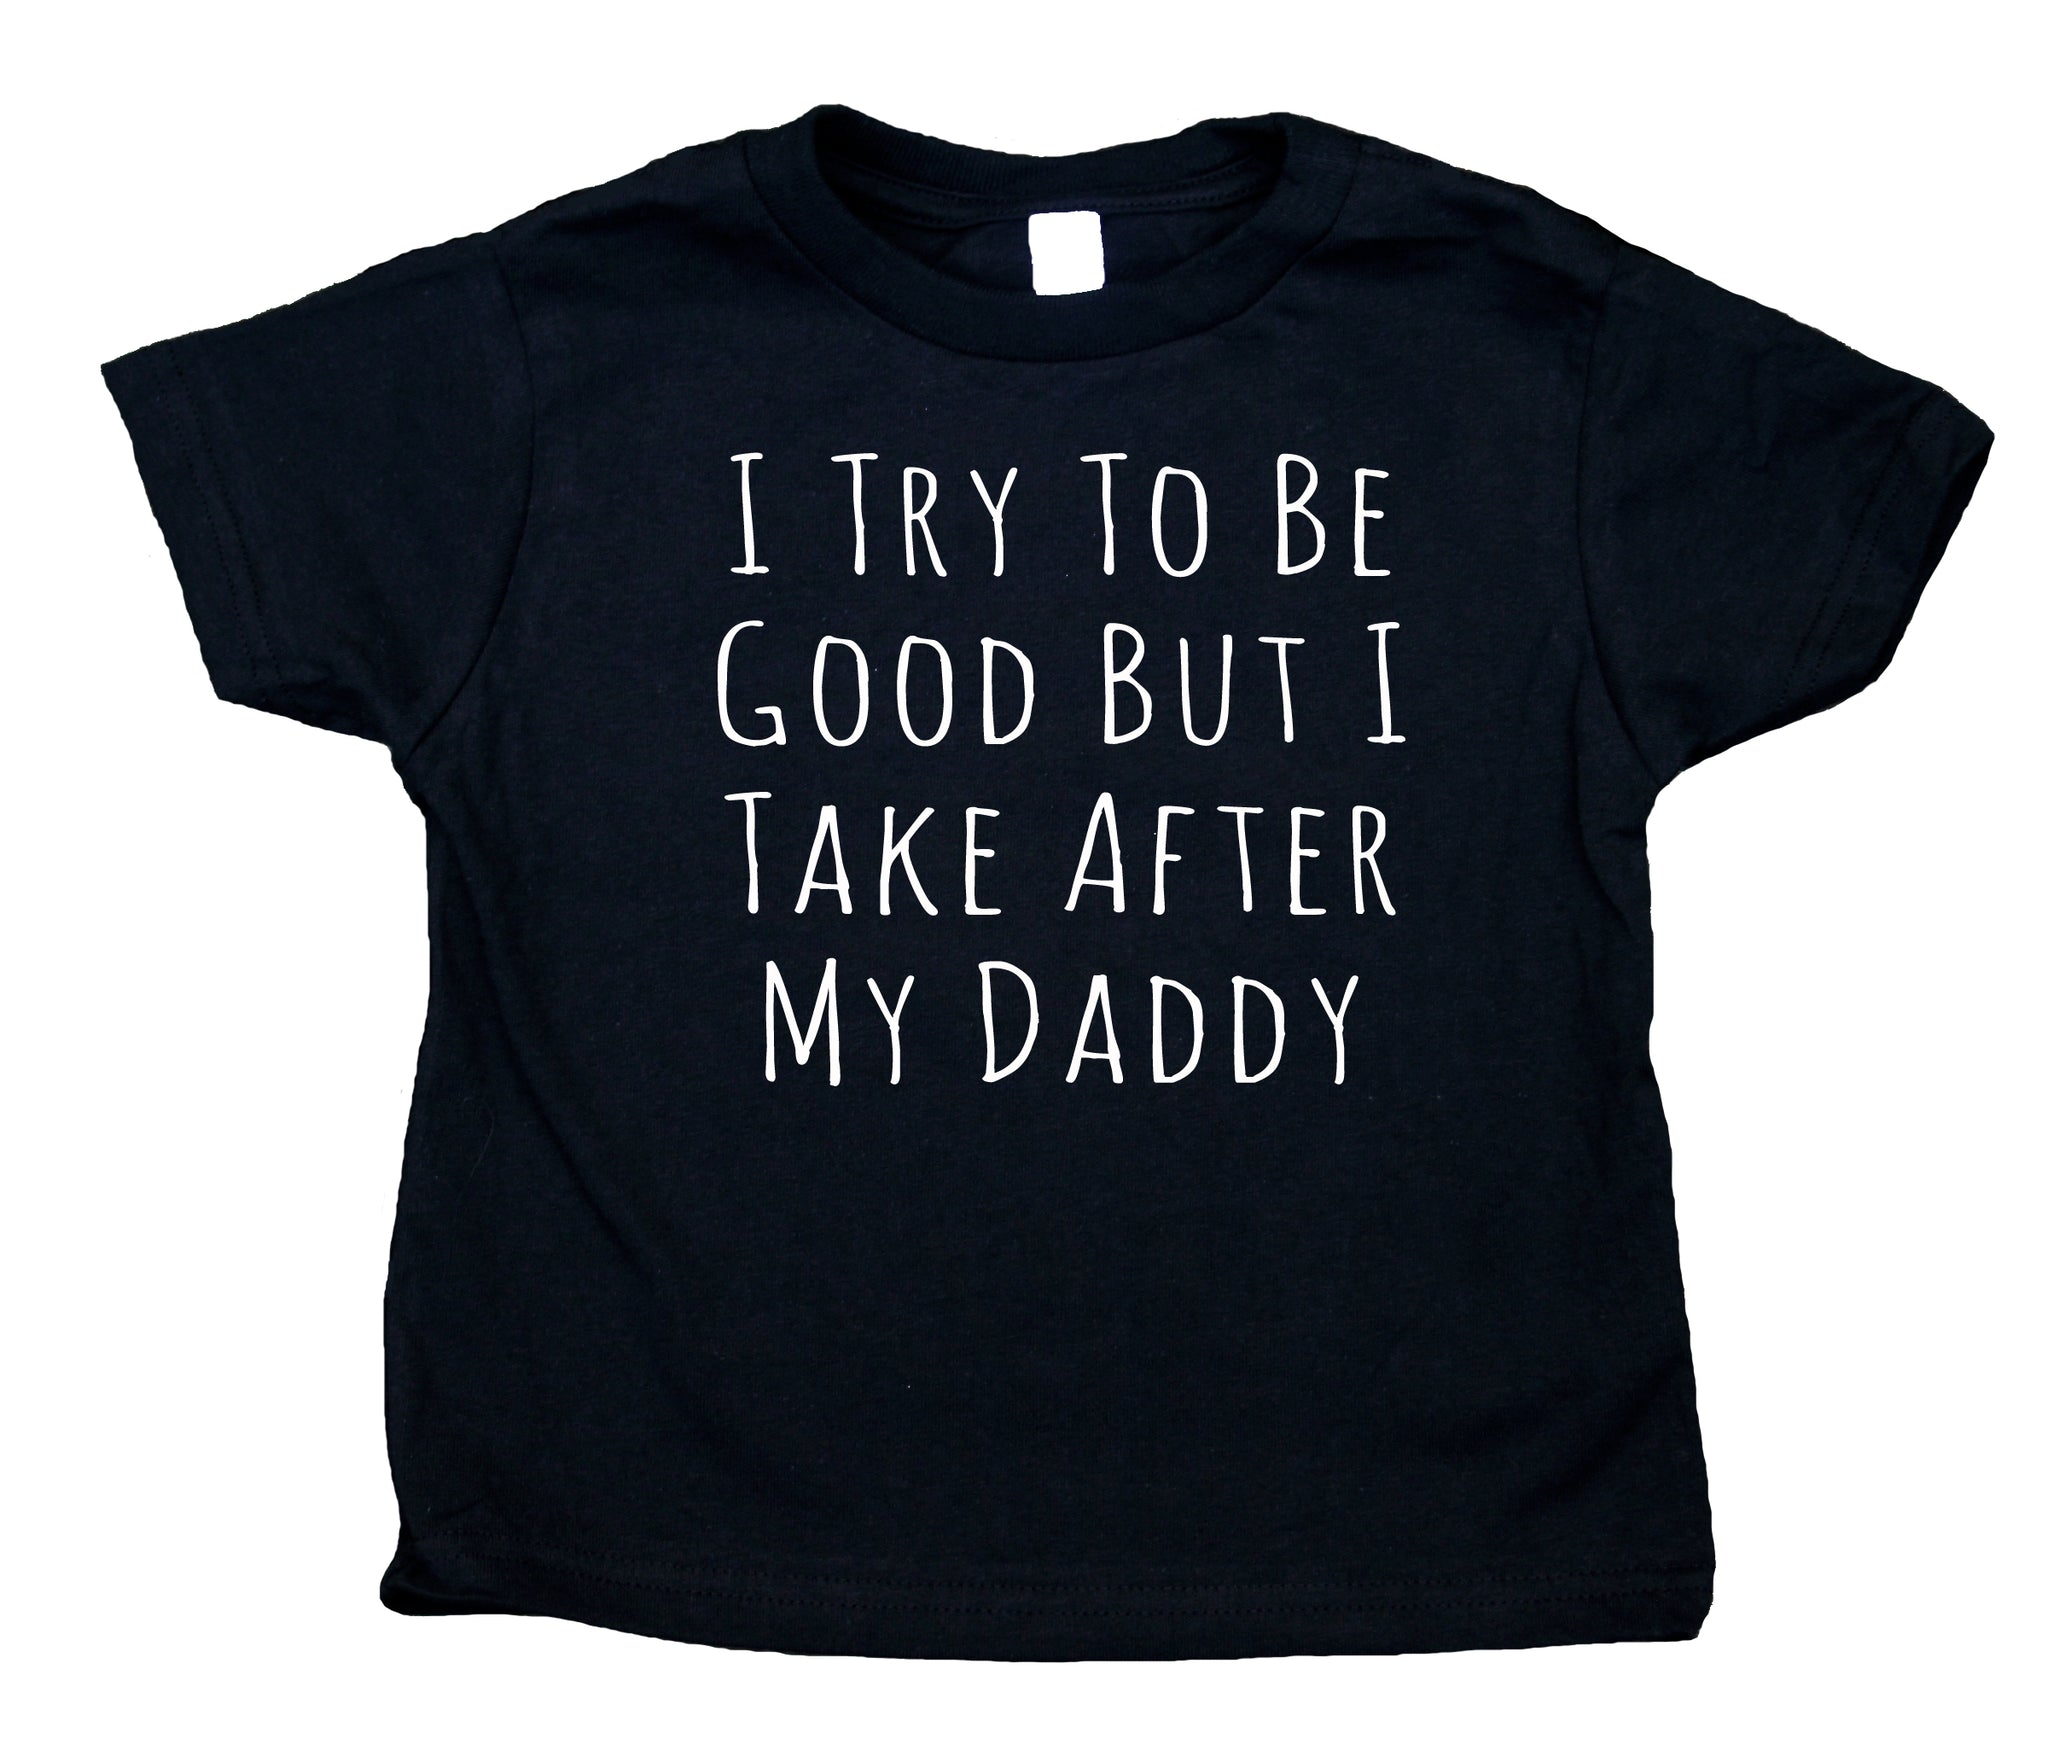 I Try To Be Good Back I Take After My Daddy Toddler Shirt Funny Dad Boy Girl Kids Birthday Clothing